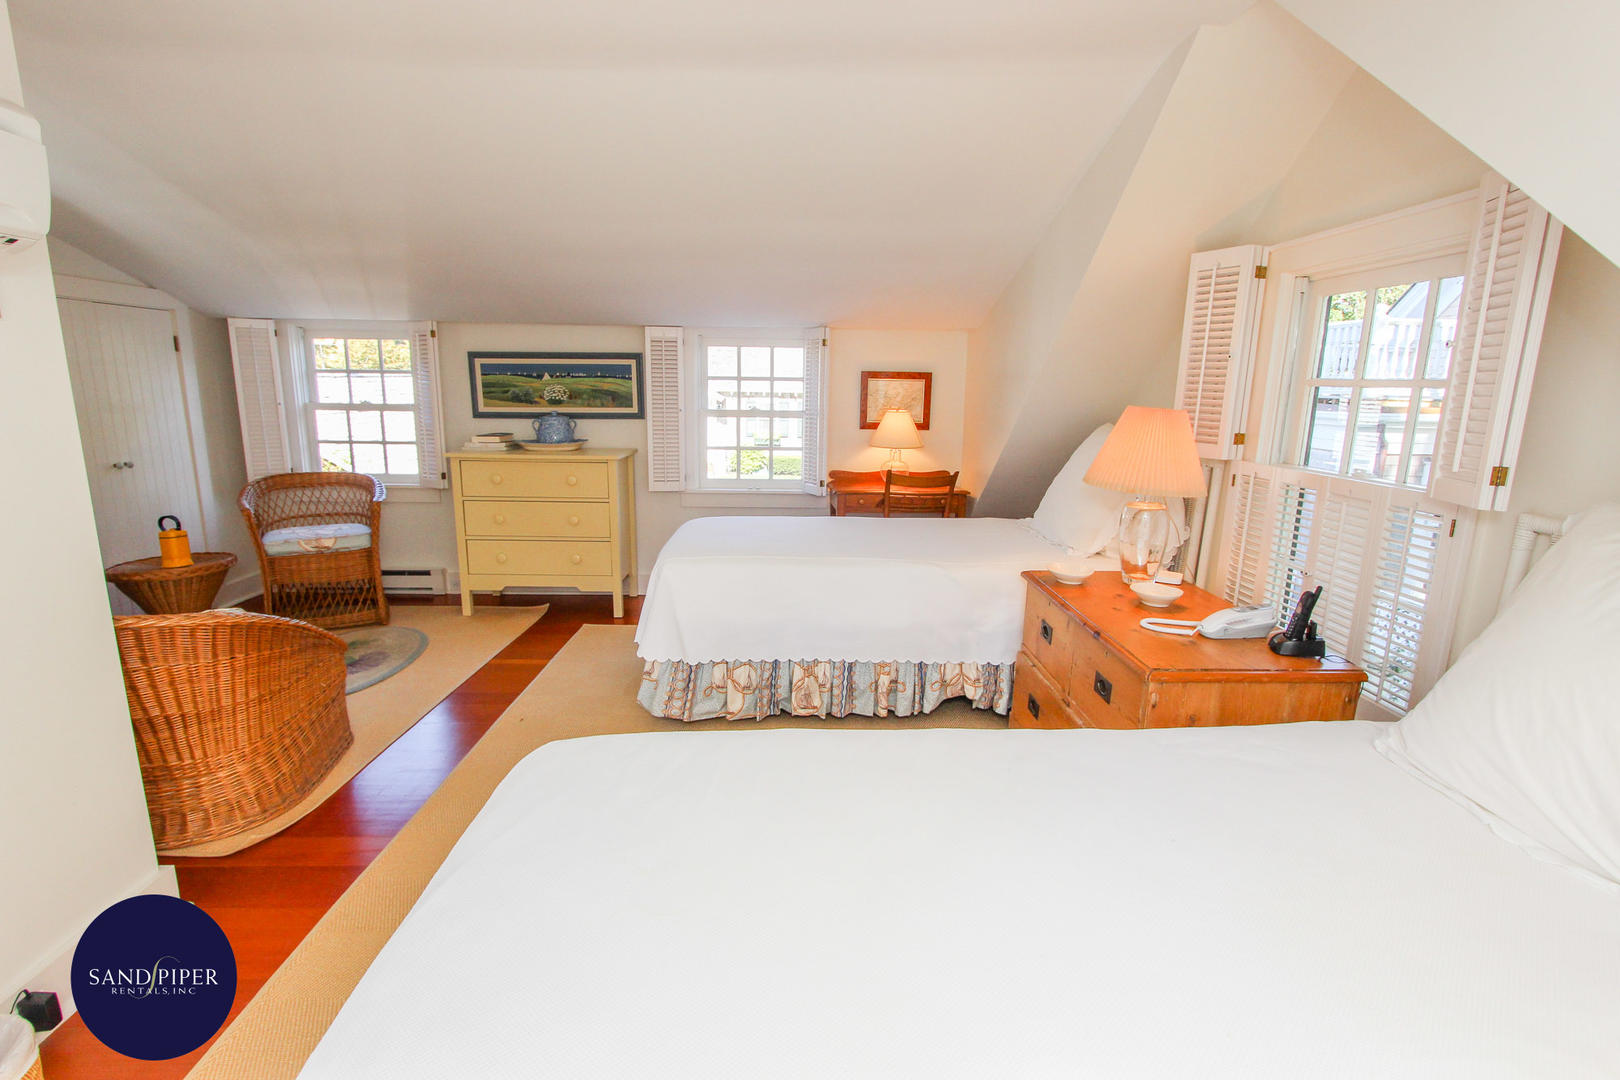 Bedroom 7 in Carriage House, Pair of Twins